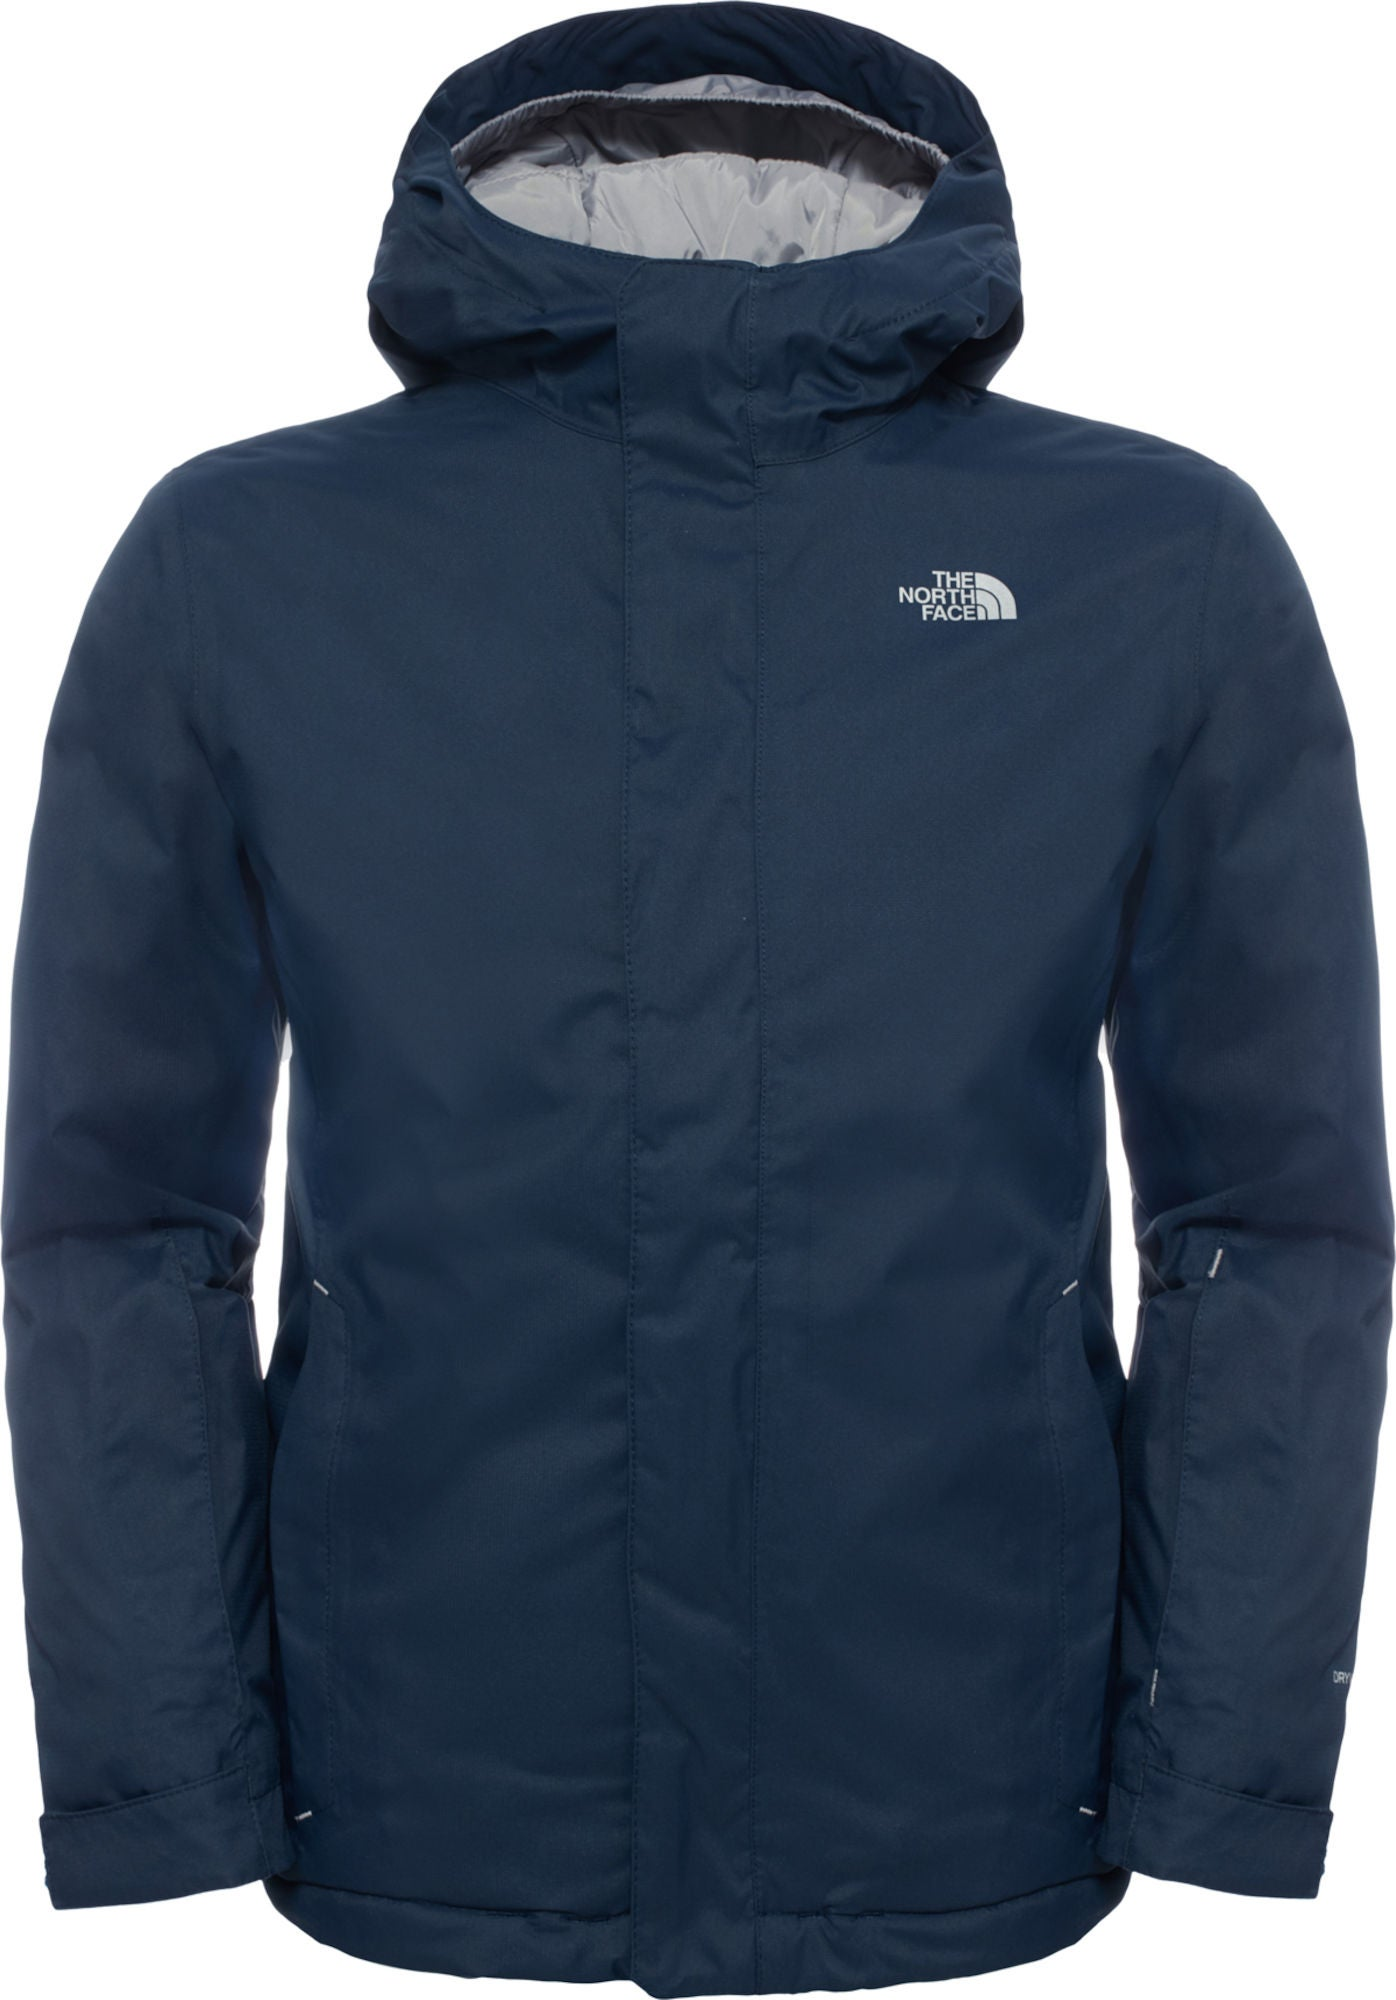 The North Face Snow Quest Jacka, Cosmic Blue M